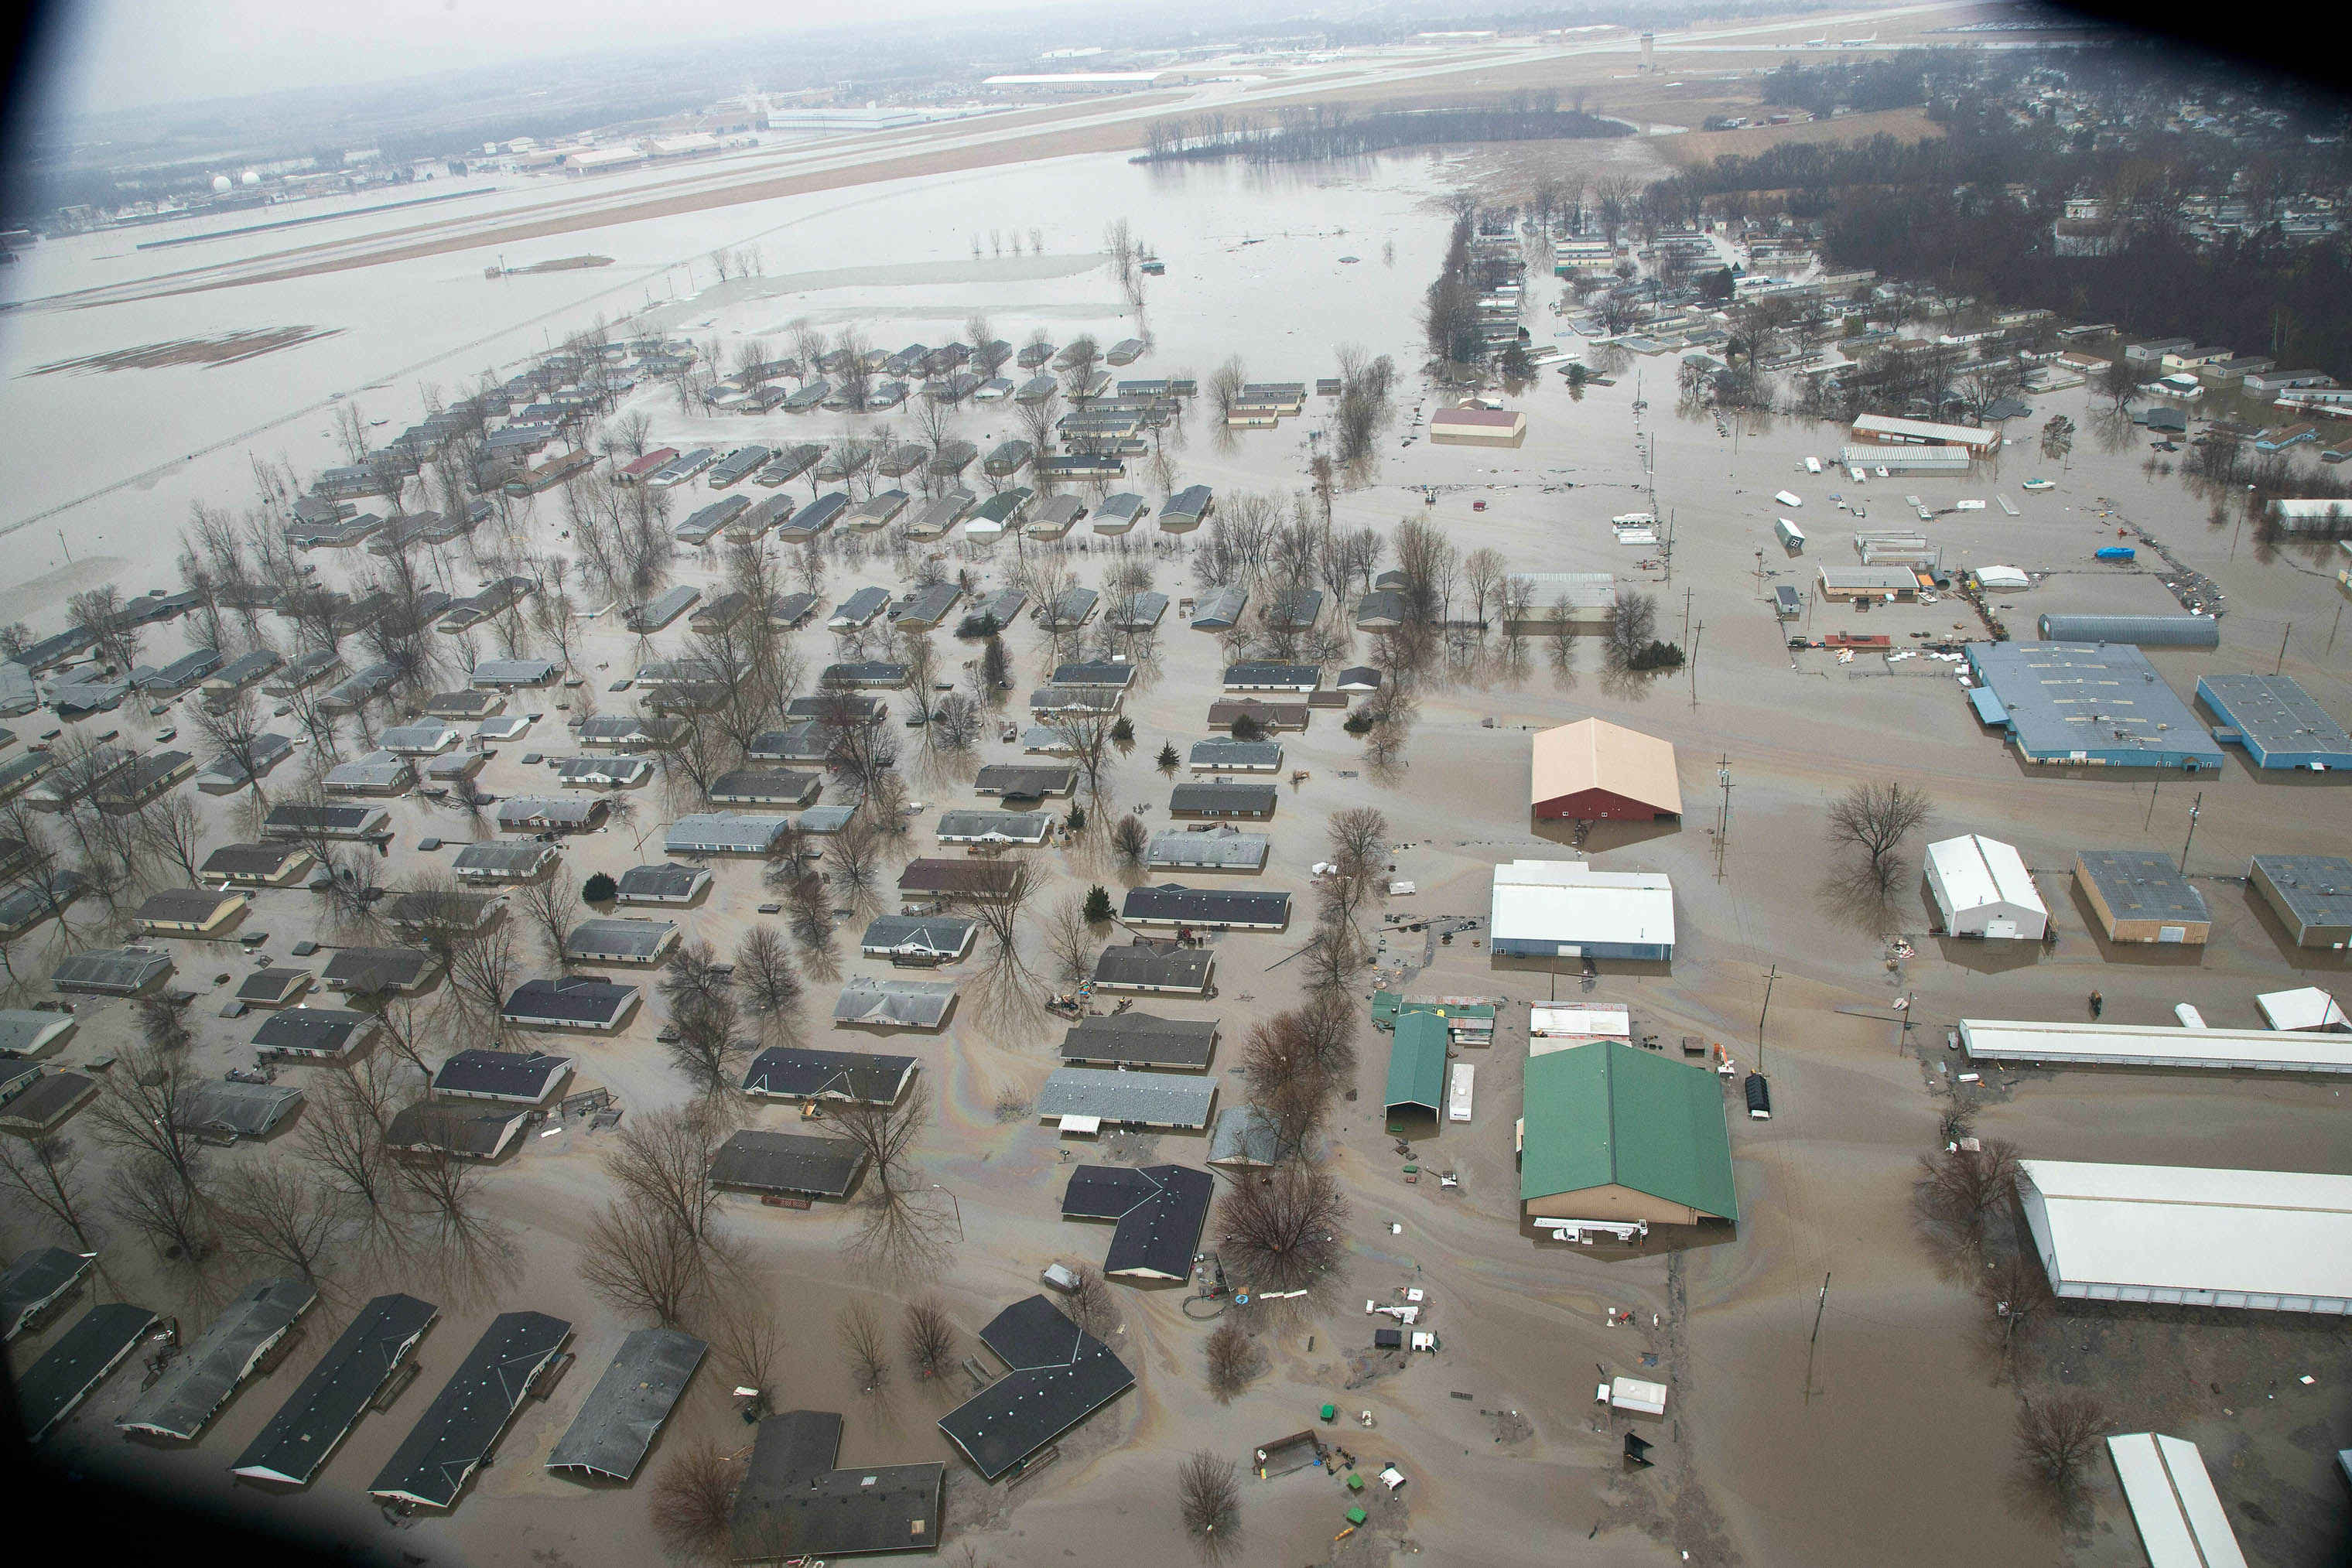 A neighborhood in Bellevue, Nebraska, is flooded by waters from the Missouri River, seen here with the Offutt Air Force Base runway.